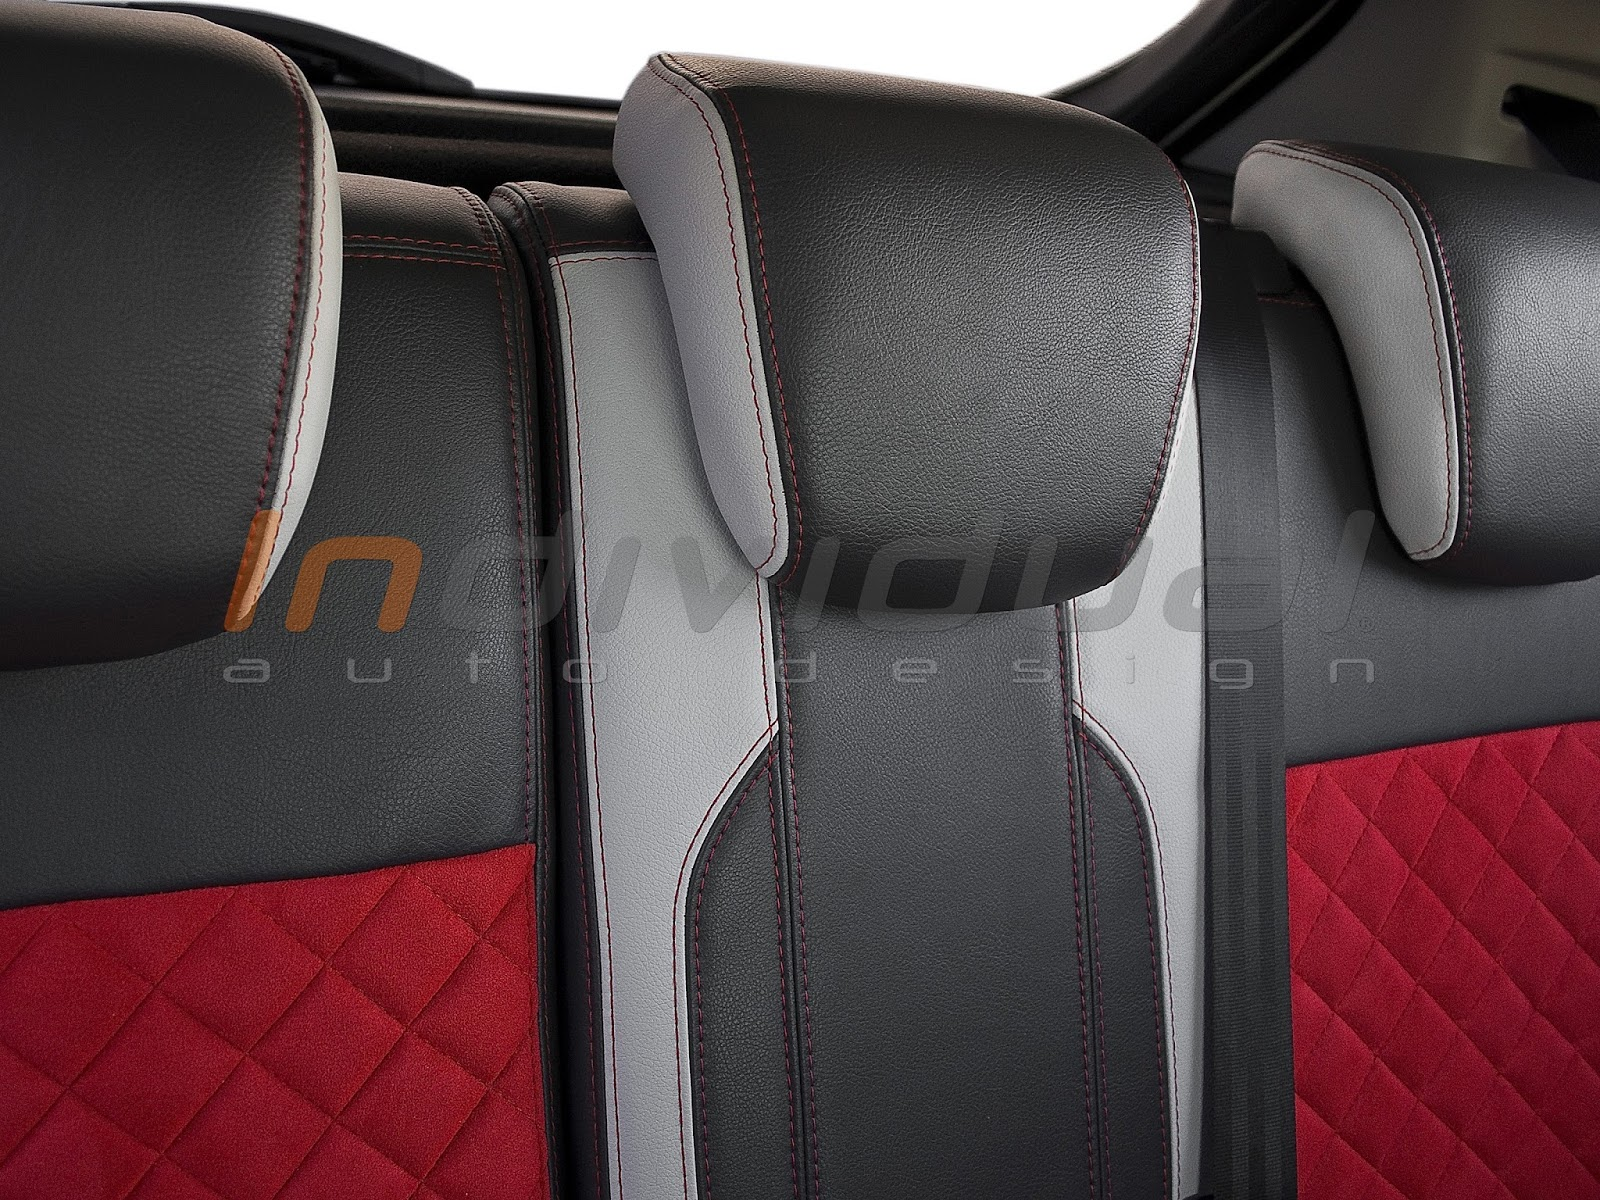 A Supreme Quality Material Not Only Makes Your Interior Look Classy But Also Keep Seats Warm Especially During Cold Months